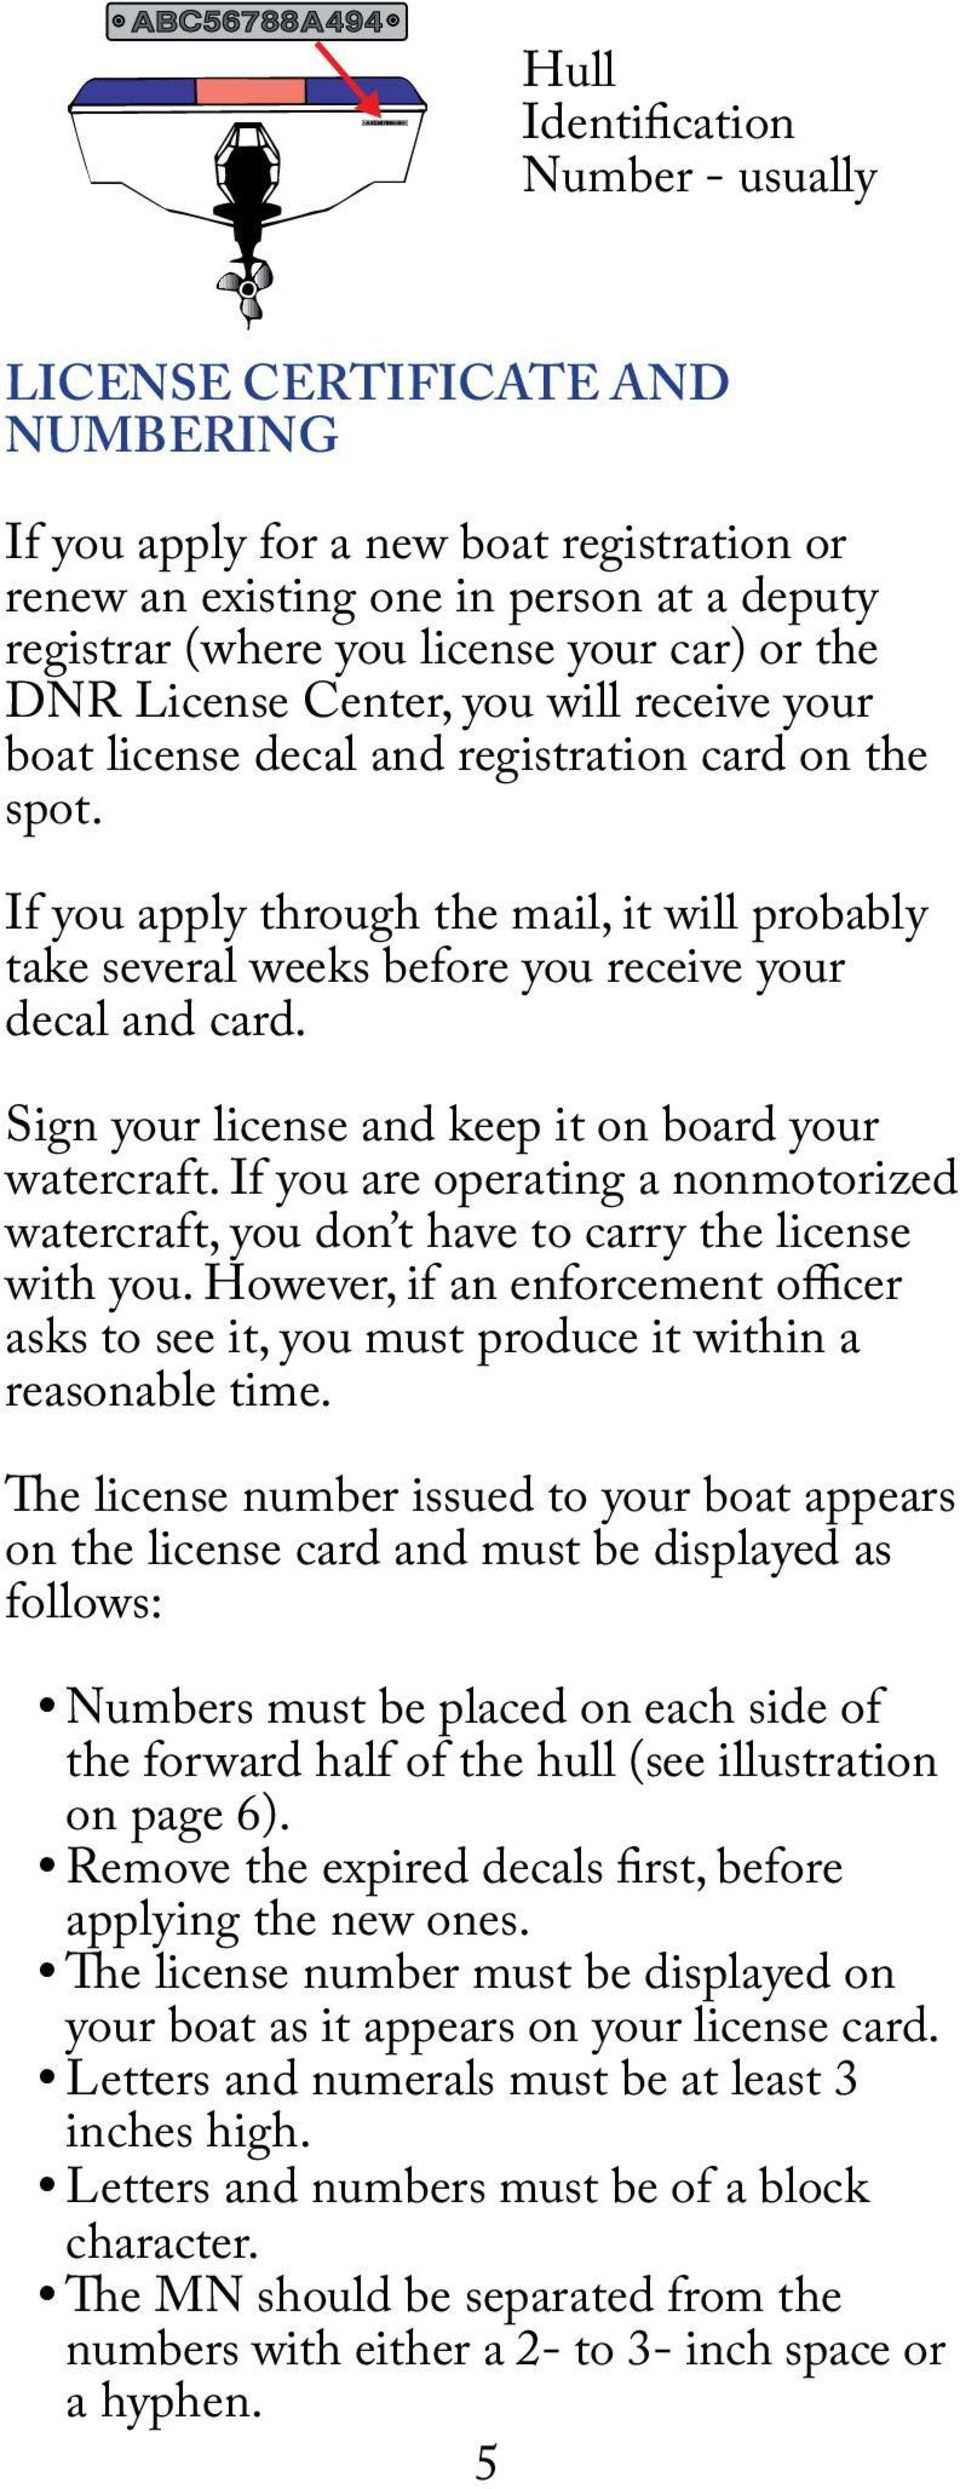 If you apply through the mail, it will probably take several weeks before you receive your decal and card. Sign your license and keep it on board your watercraft.